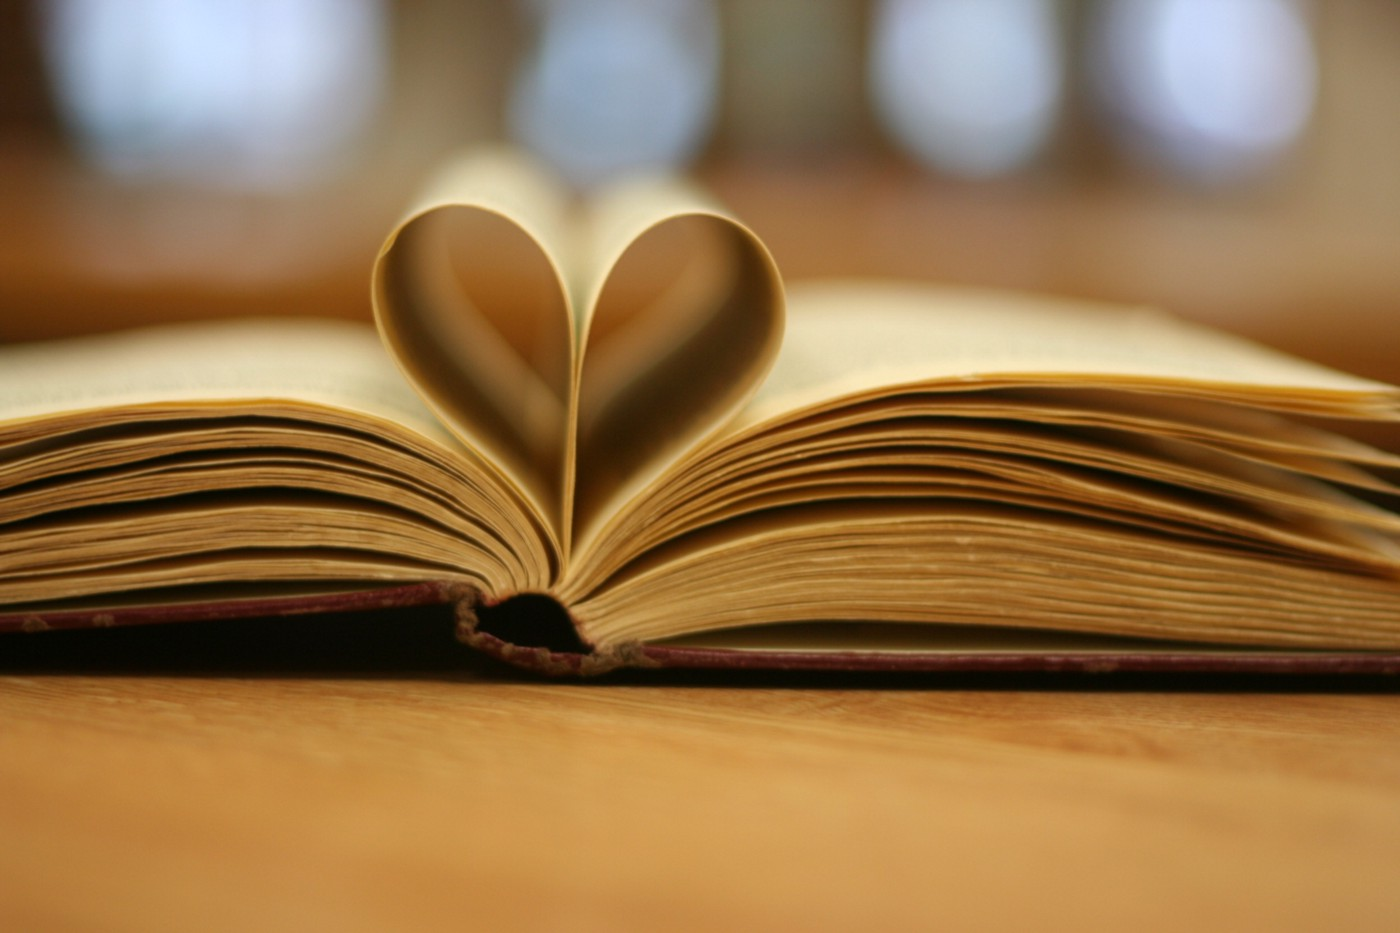 A book lies open with the middle pages gently folded into a heart shape.